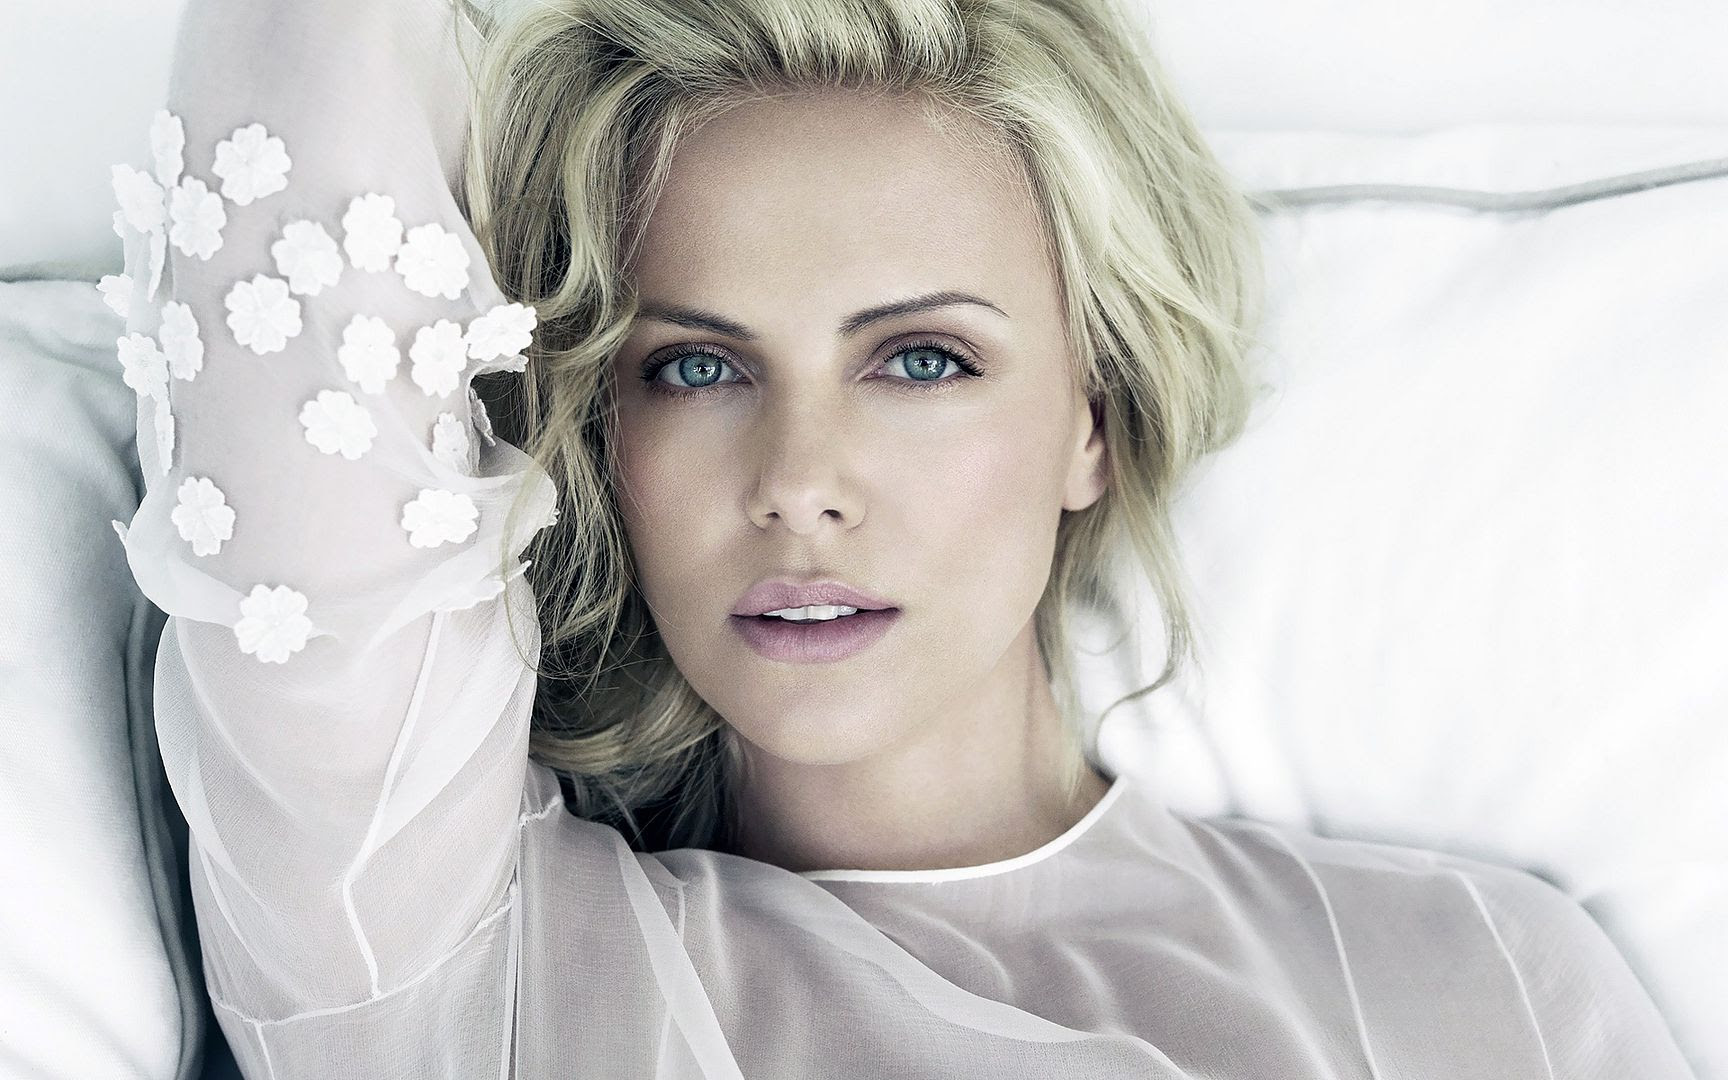 Charlize Theron photo charlize_theron_38-wide.jpg